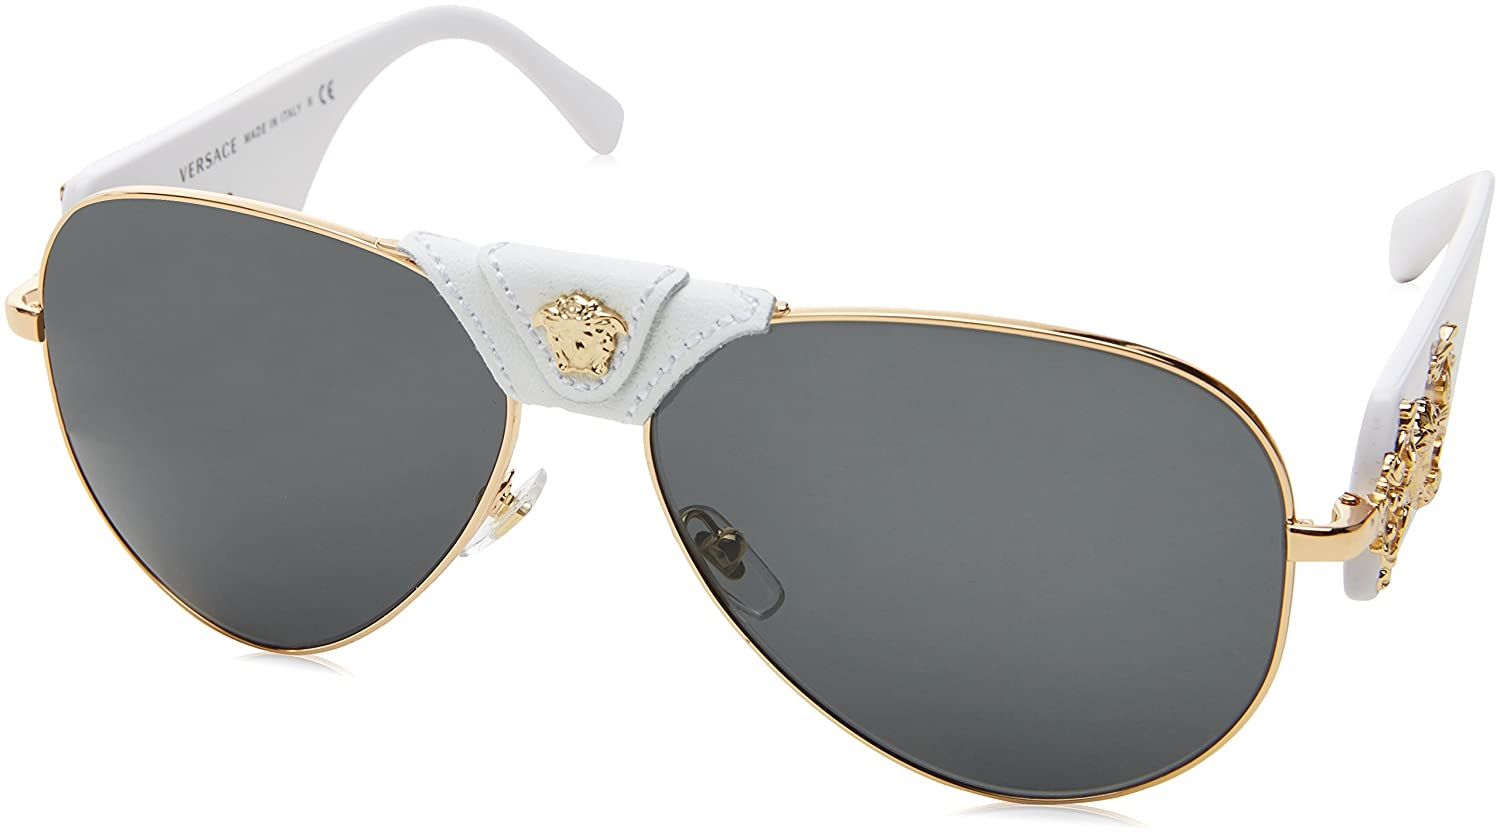 f3bb12f0725b Amazon.com  Versace Women s 0VE2150Q 1341 87 Medusa Aviator Sunglasses